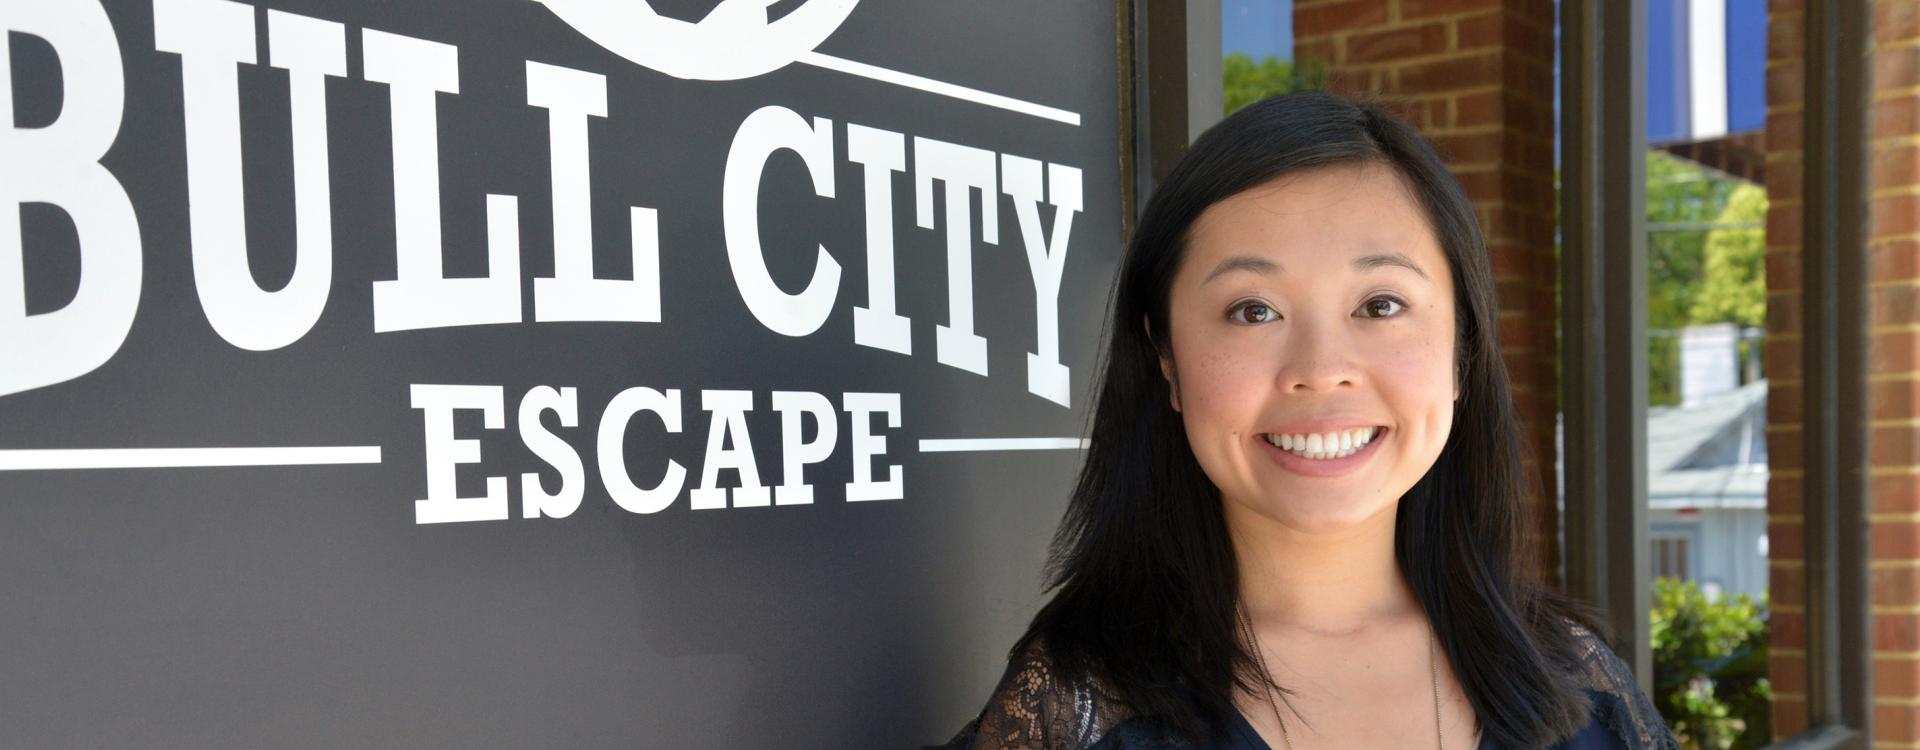 female business owner stands in front of Bull City Escape sign